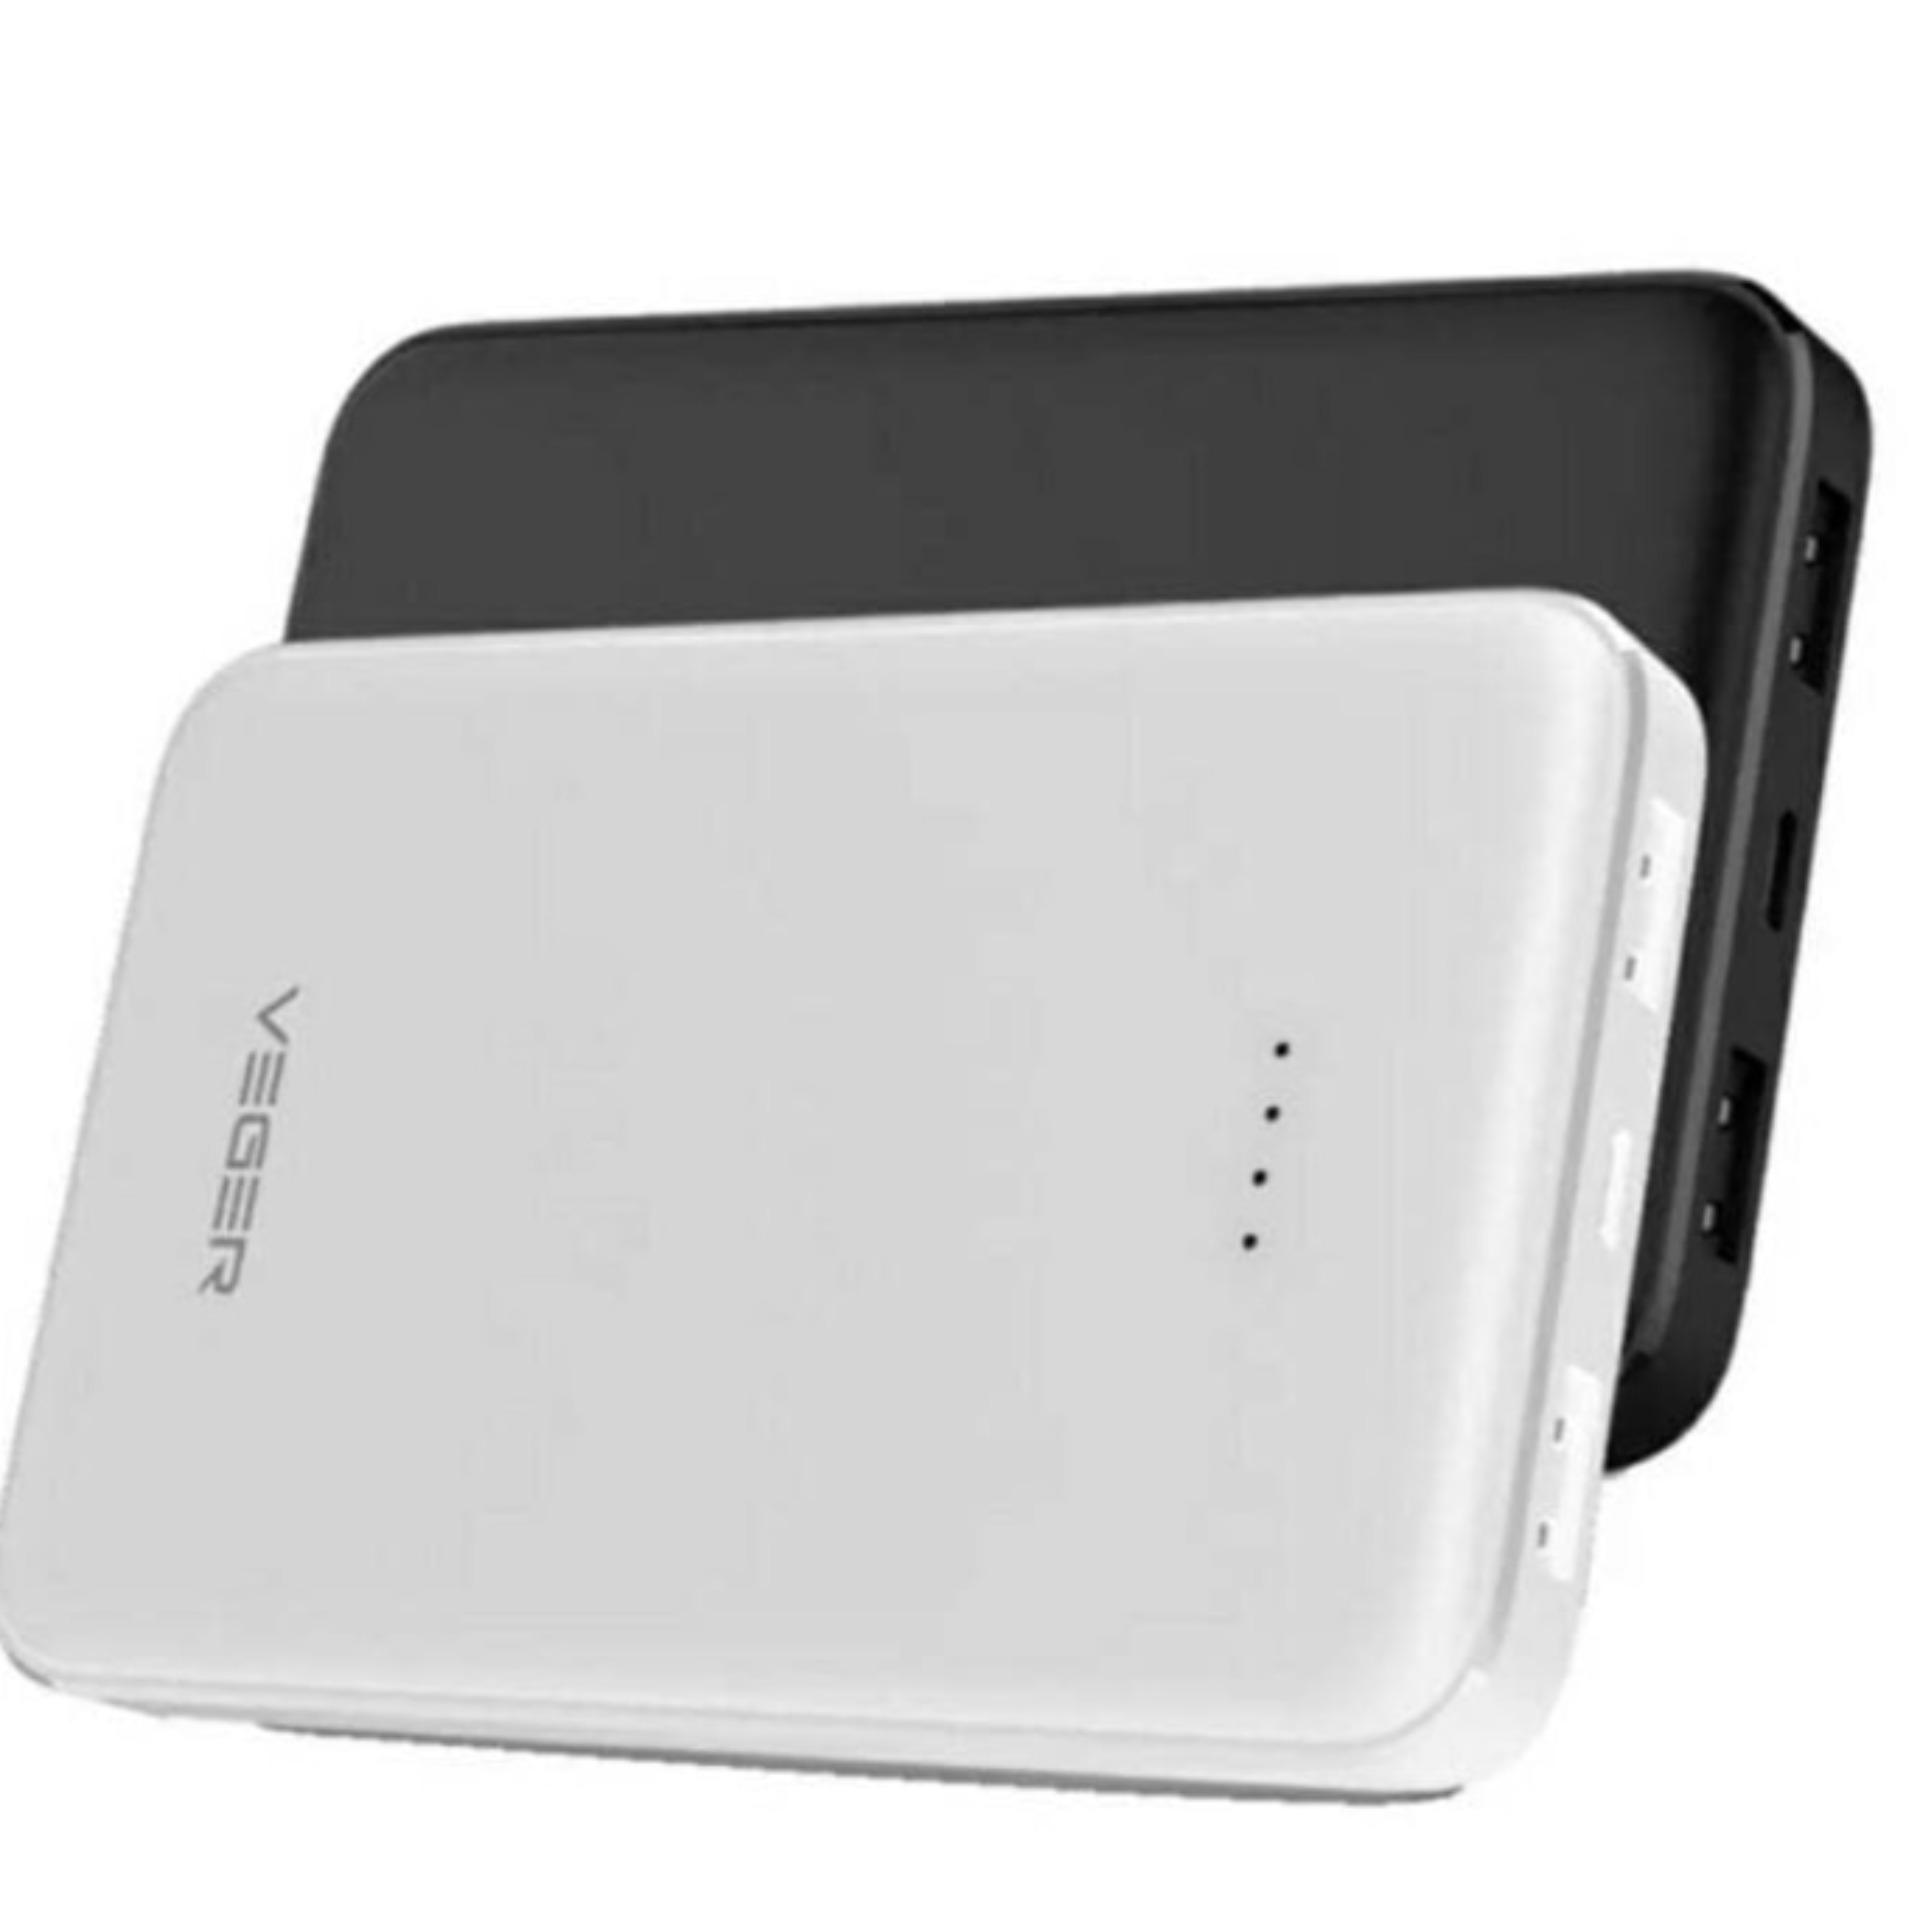 Veger Powerbank V18 22500mah 2output - Hitam